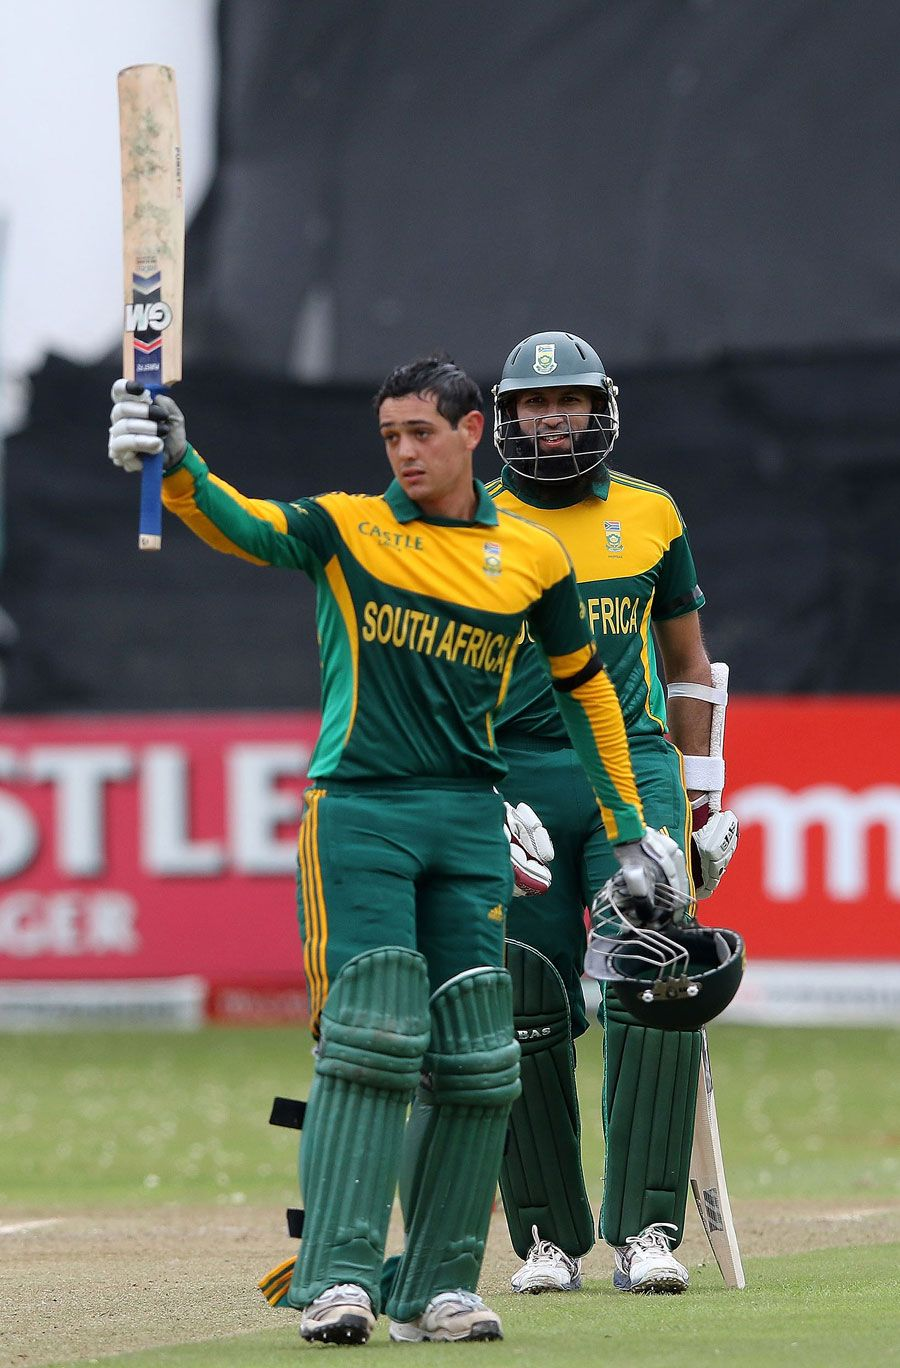 South Africa cruise to series win Cricket teams, South